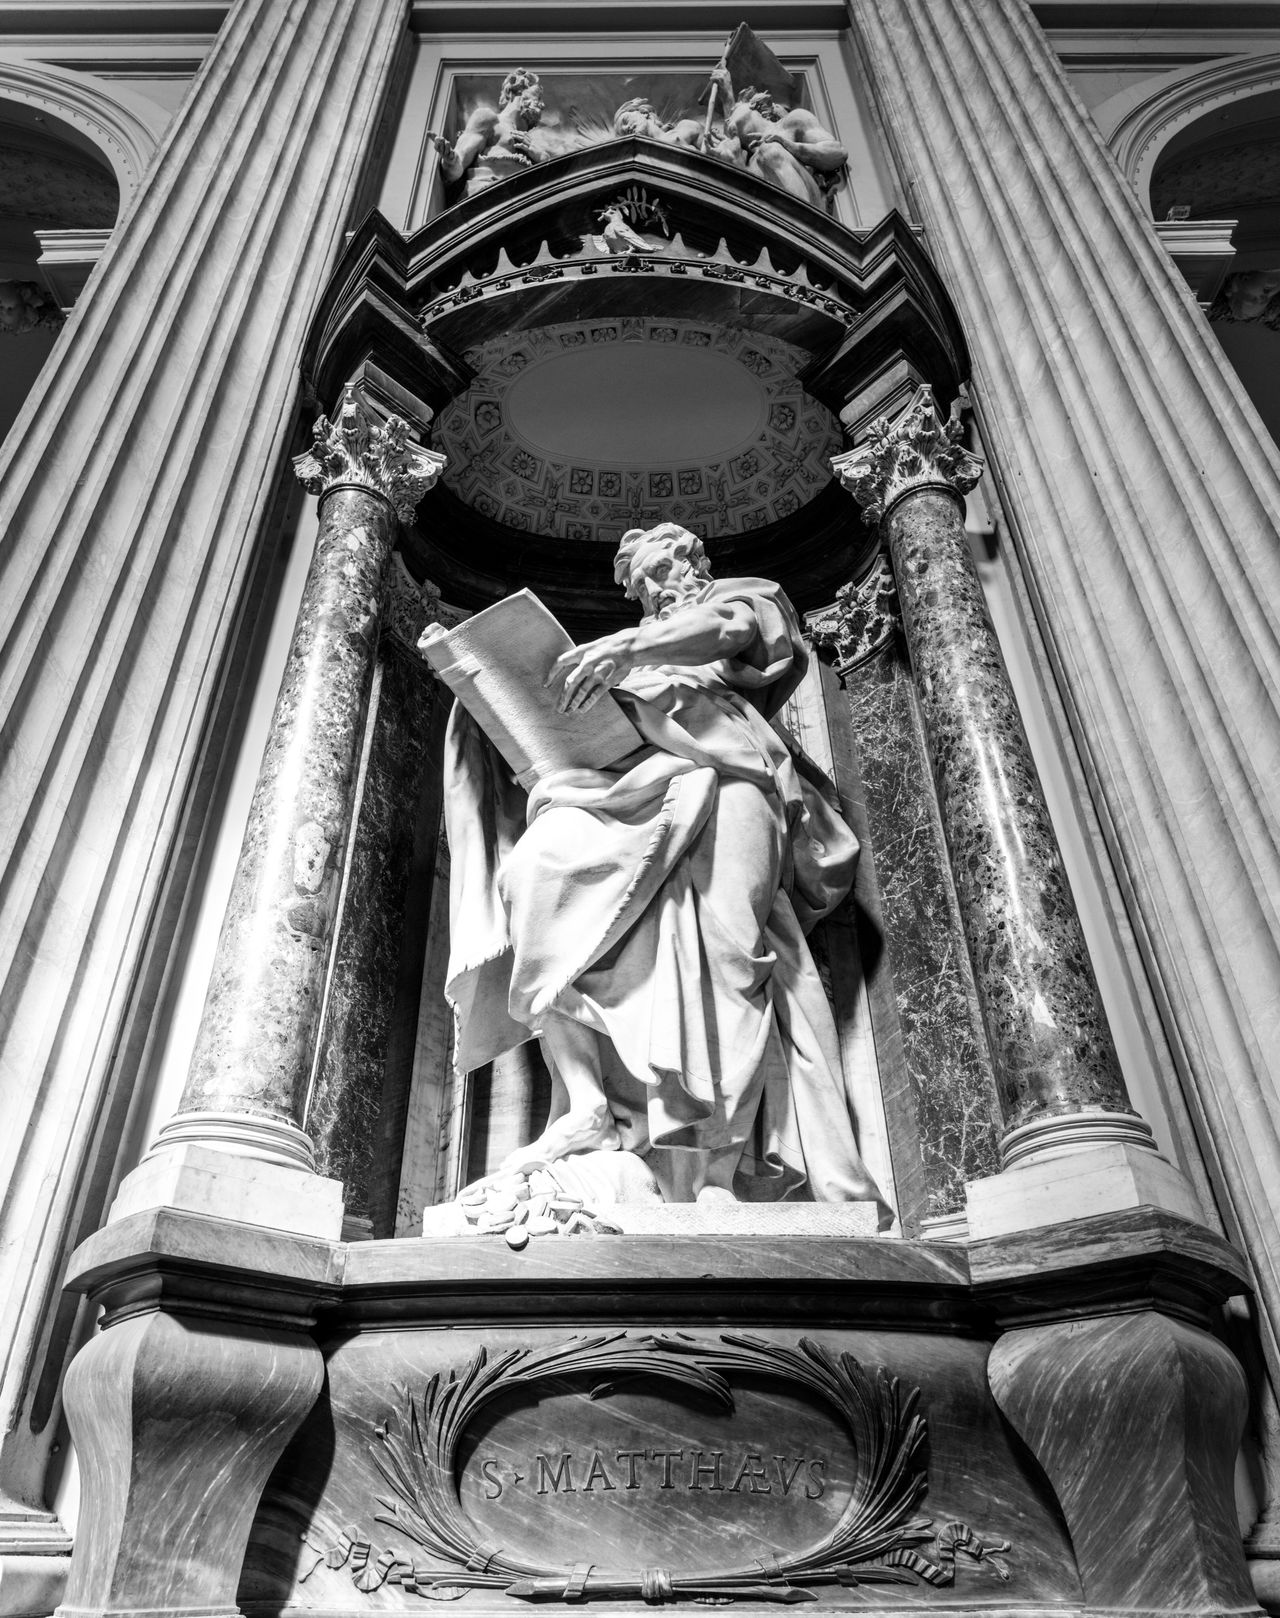 Heavy Artillery. Low Angle View Human Representation Religion Statue Sculpture Place Of Worship Architecture Indoors  Heavy Basilica Church Bella Italia Italia Italy❤️ Black & White Blackandwhite Black And White Fortheloveofblackandwhite Roma Rome Europe Rome Italy Architecture Spirituality Place Of Worship